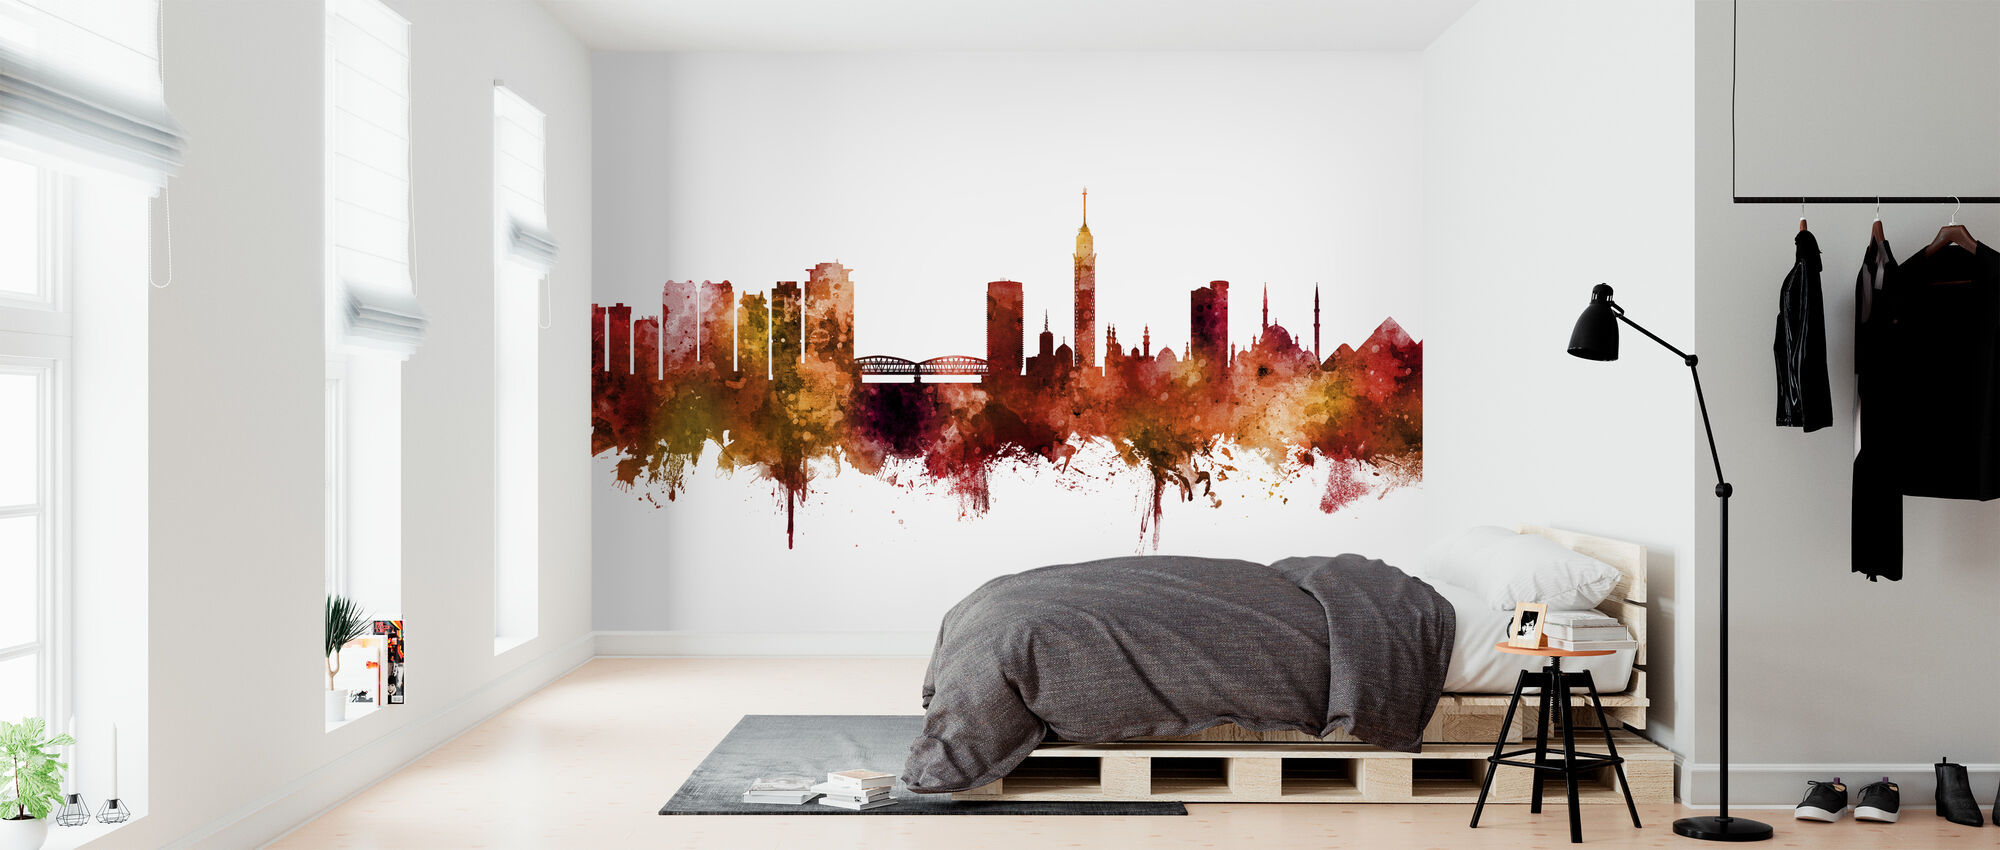 Cairo Egypt Skyline - Wallpaper - Bedroom